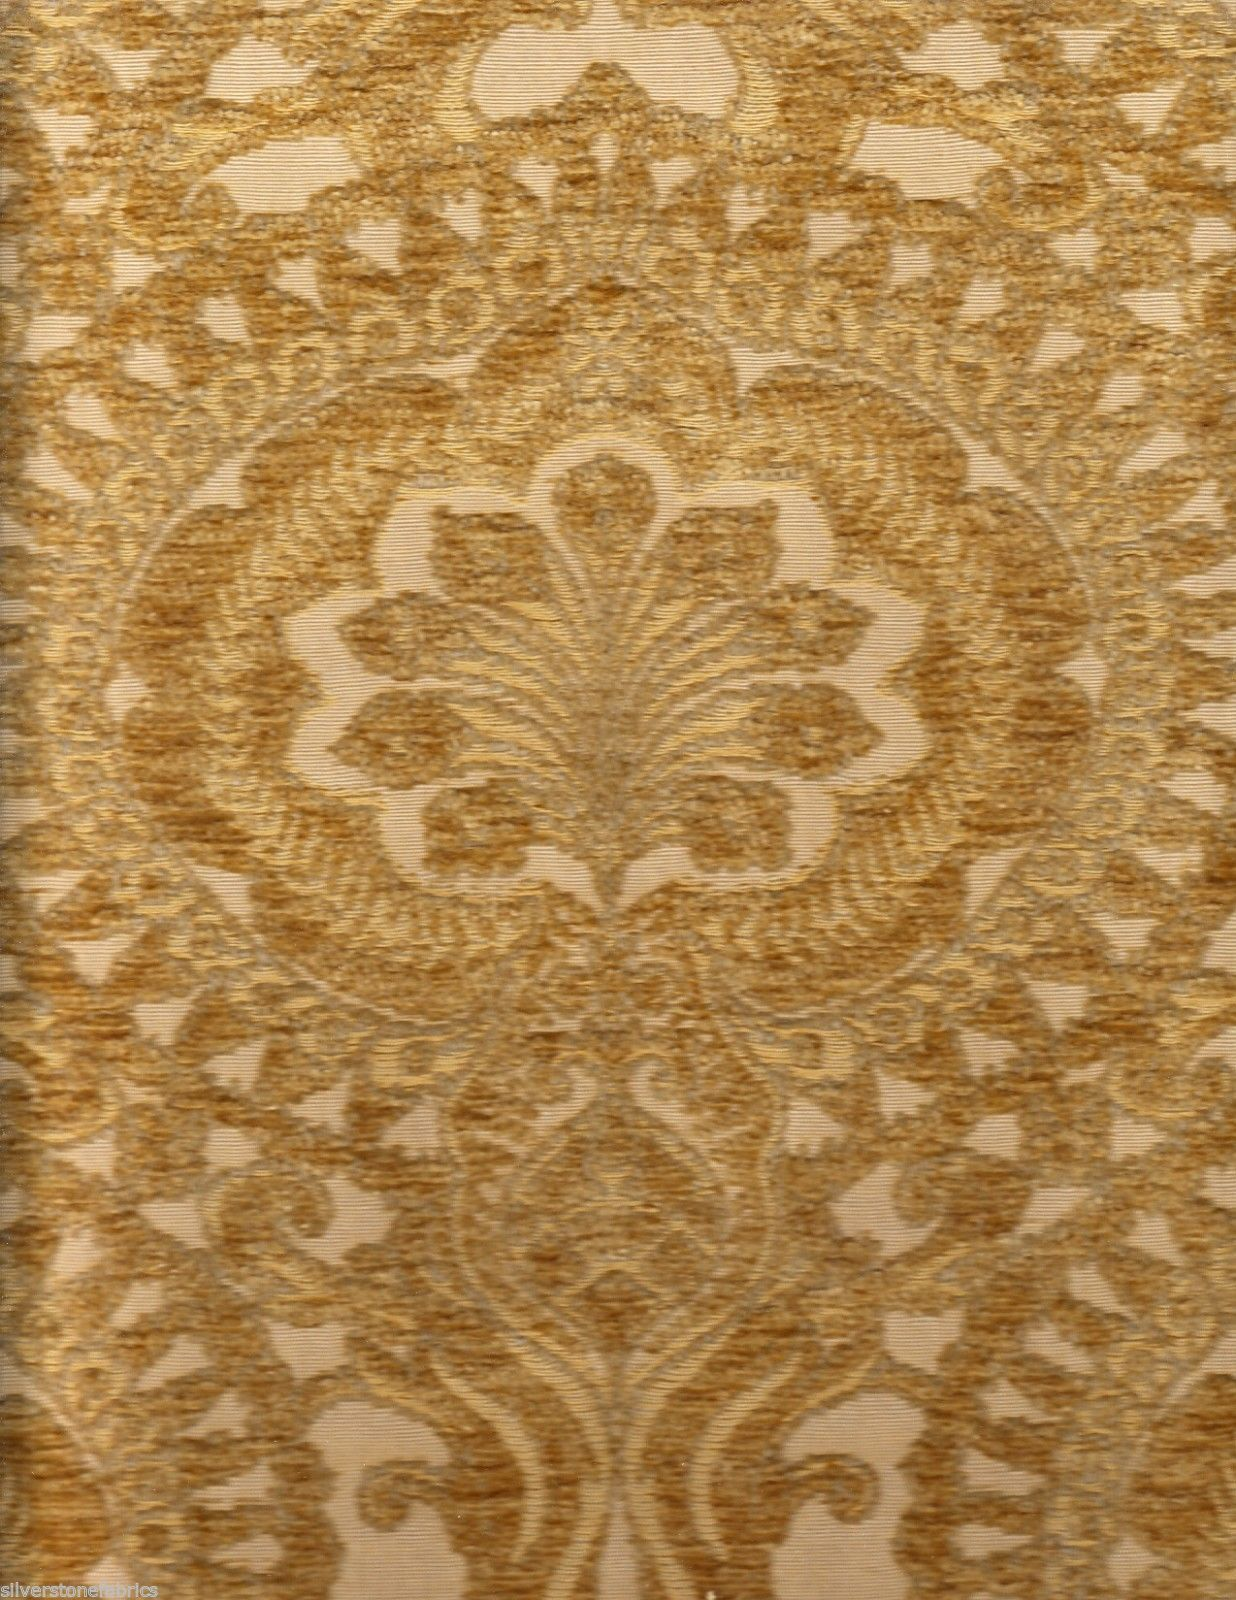 15.125 Beacon Hill Upholstery Fabric Lalonde Burnished Gold Floral 162030 DG2